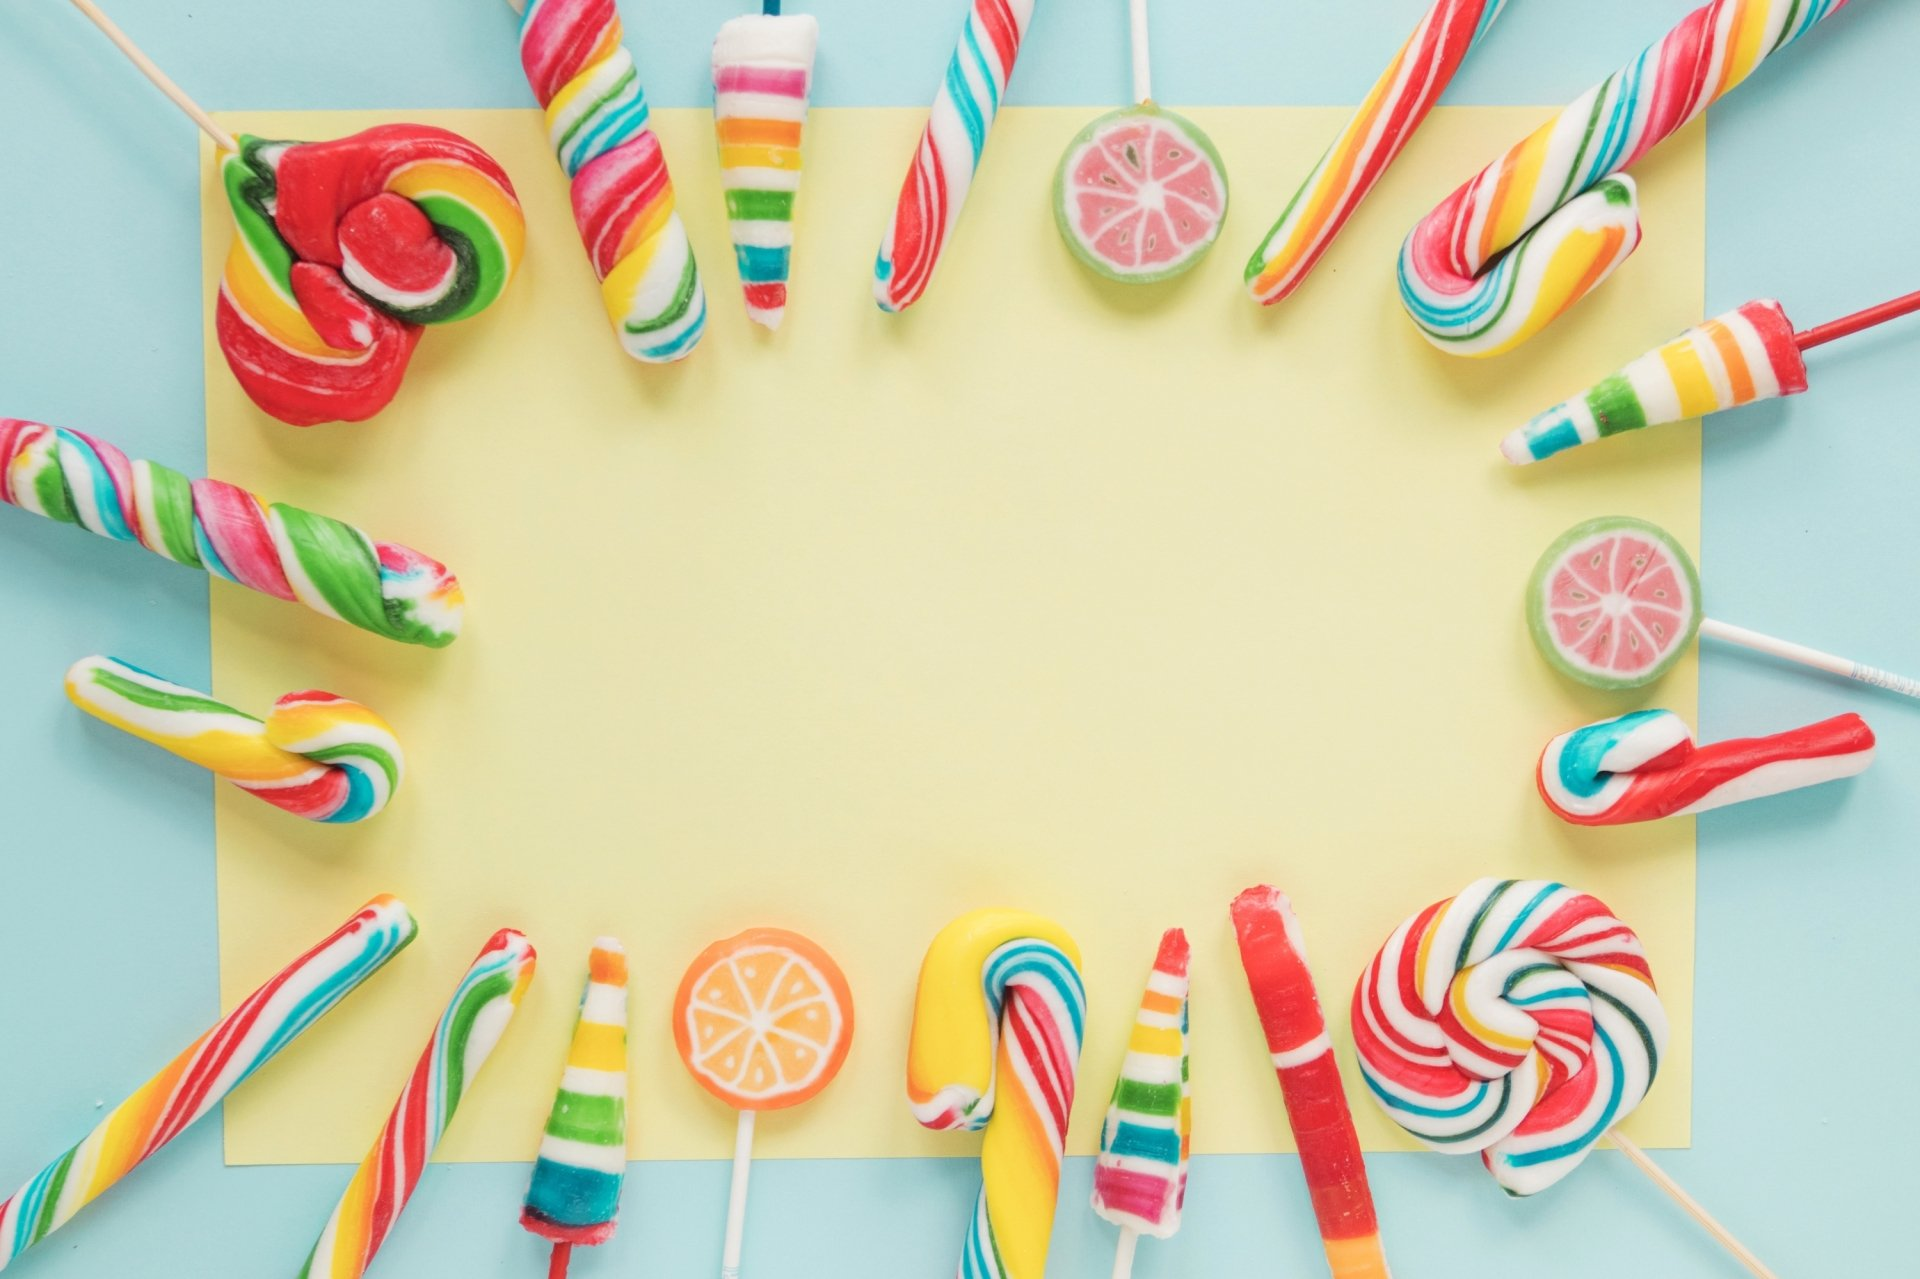 Food - Candy  Sweets Colors Lollipop Wallpaper